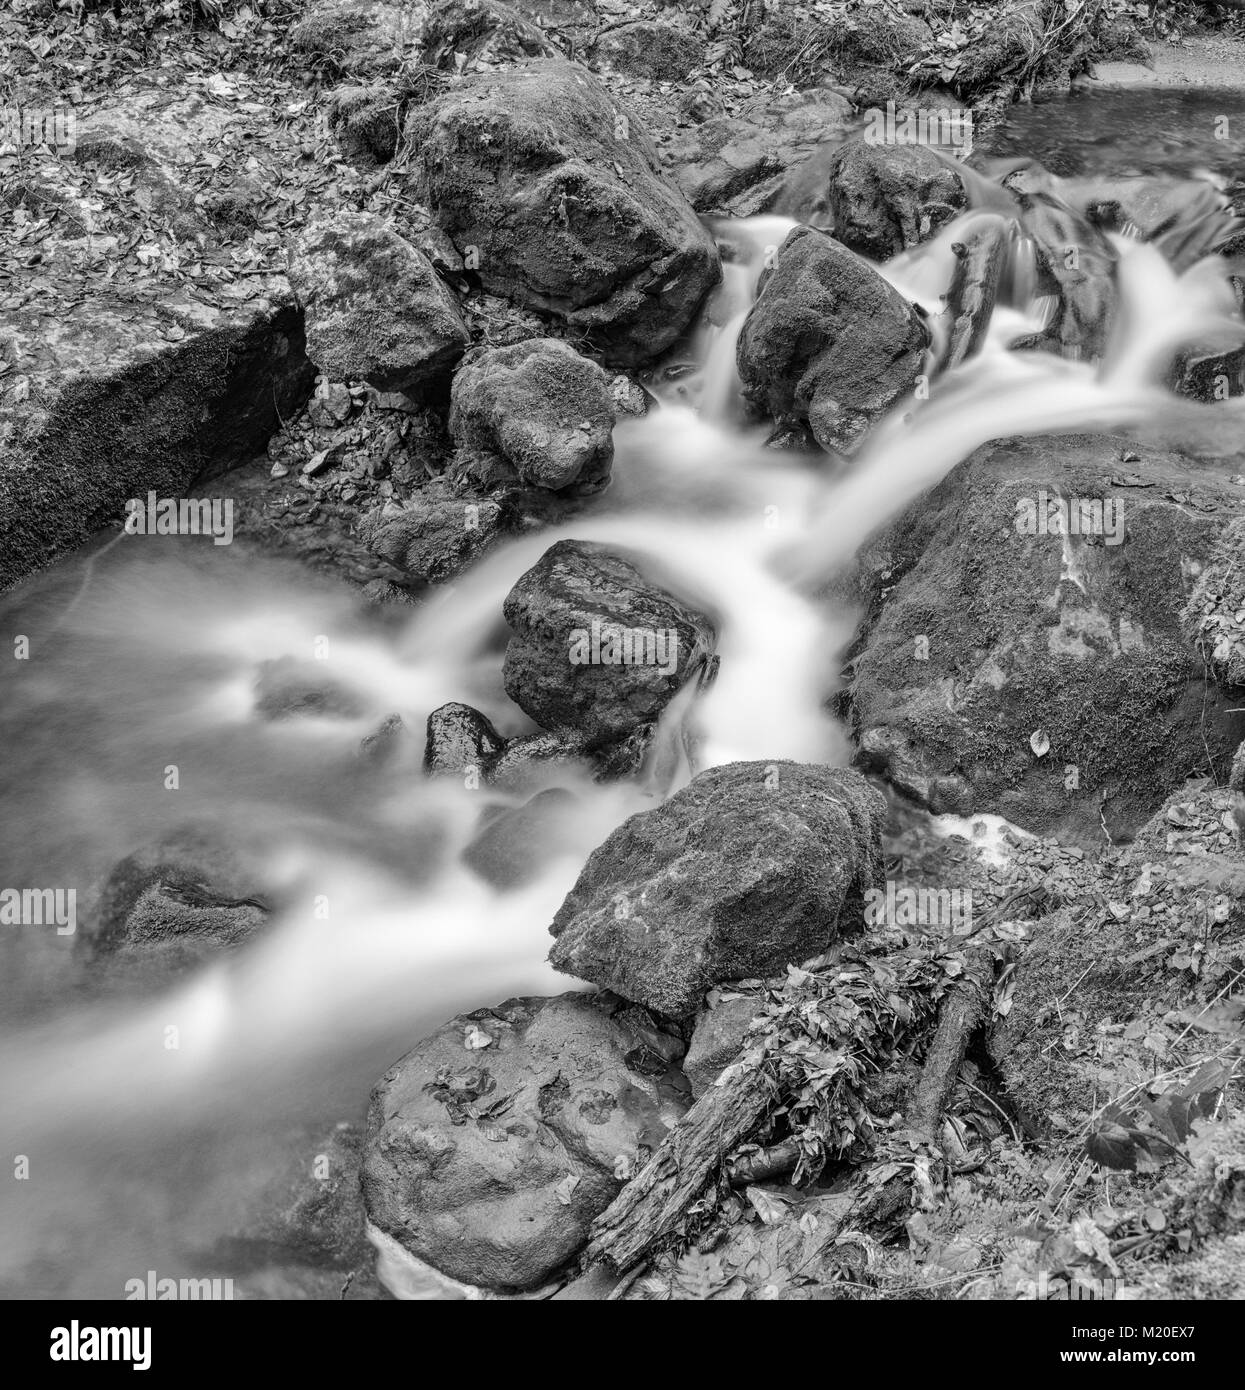 Monochrome black and white outdoor long exposure of a small stream / creek in winter / fall forest with stones,trees,moss,autumnal - Stock Image